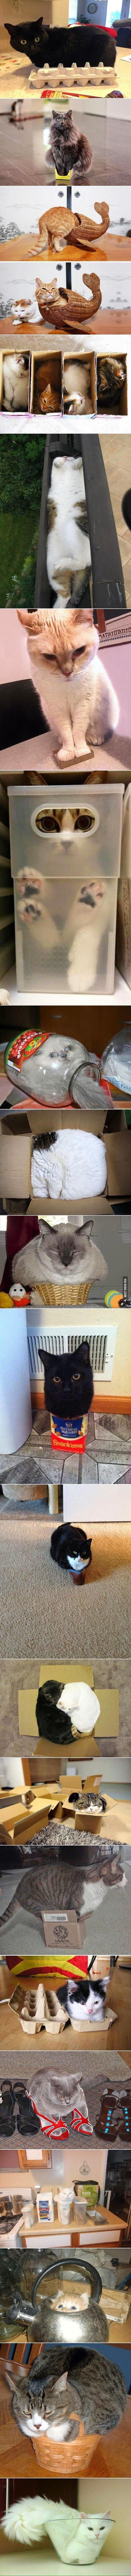 Cats being cats - 9GAG